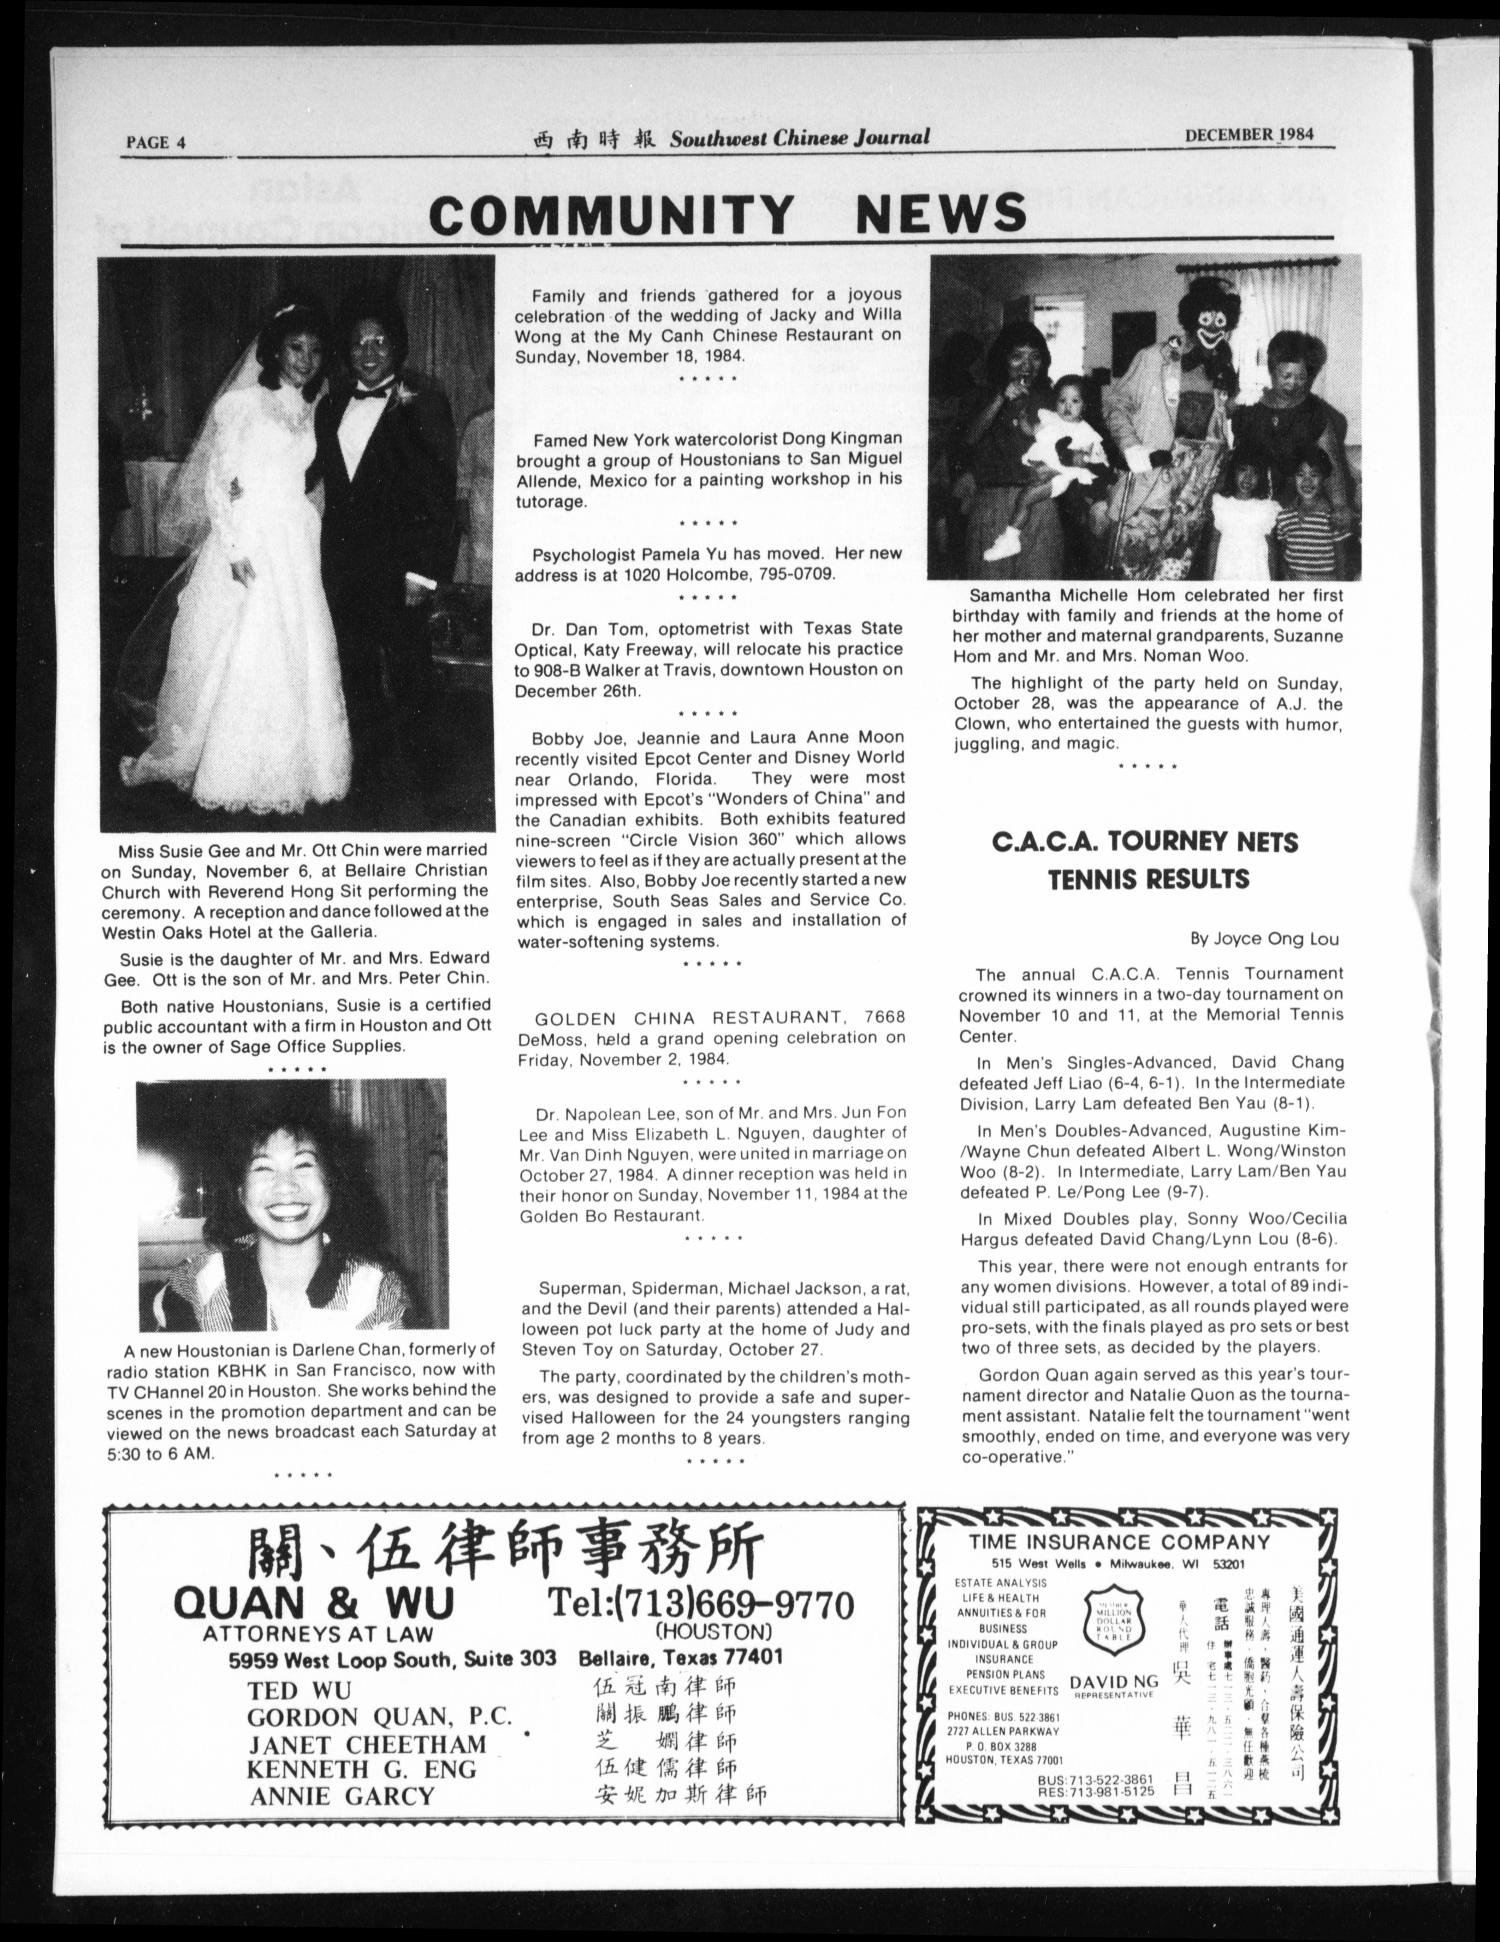 Southwest Chinese Journal (Houston, Tex.), Vol. 9, No. 12, Ed. 1 Saturday,  December 1, 1984   Page 4 Of 16   The Portal To Texas History